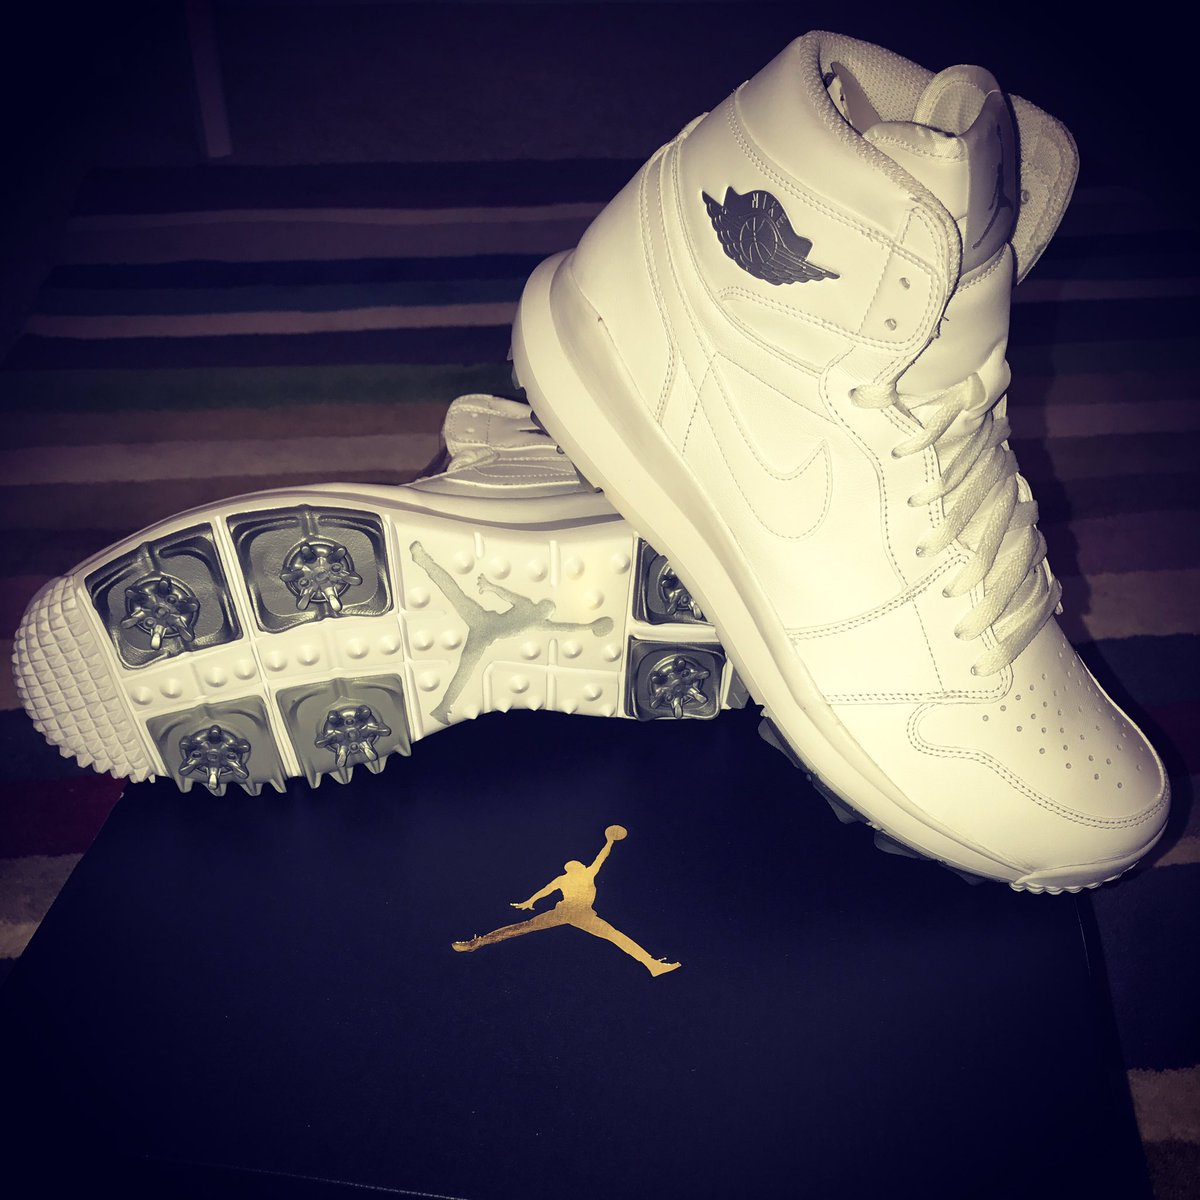 cd8986c0e47a ⛹️ICON! Can t wait to rock these bad boys! NEW NIKE AIR JORDAN 1 GOLF shoes!!!  RT if you ❤ these! https   t.co UPlRxrSYyp